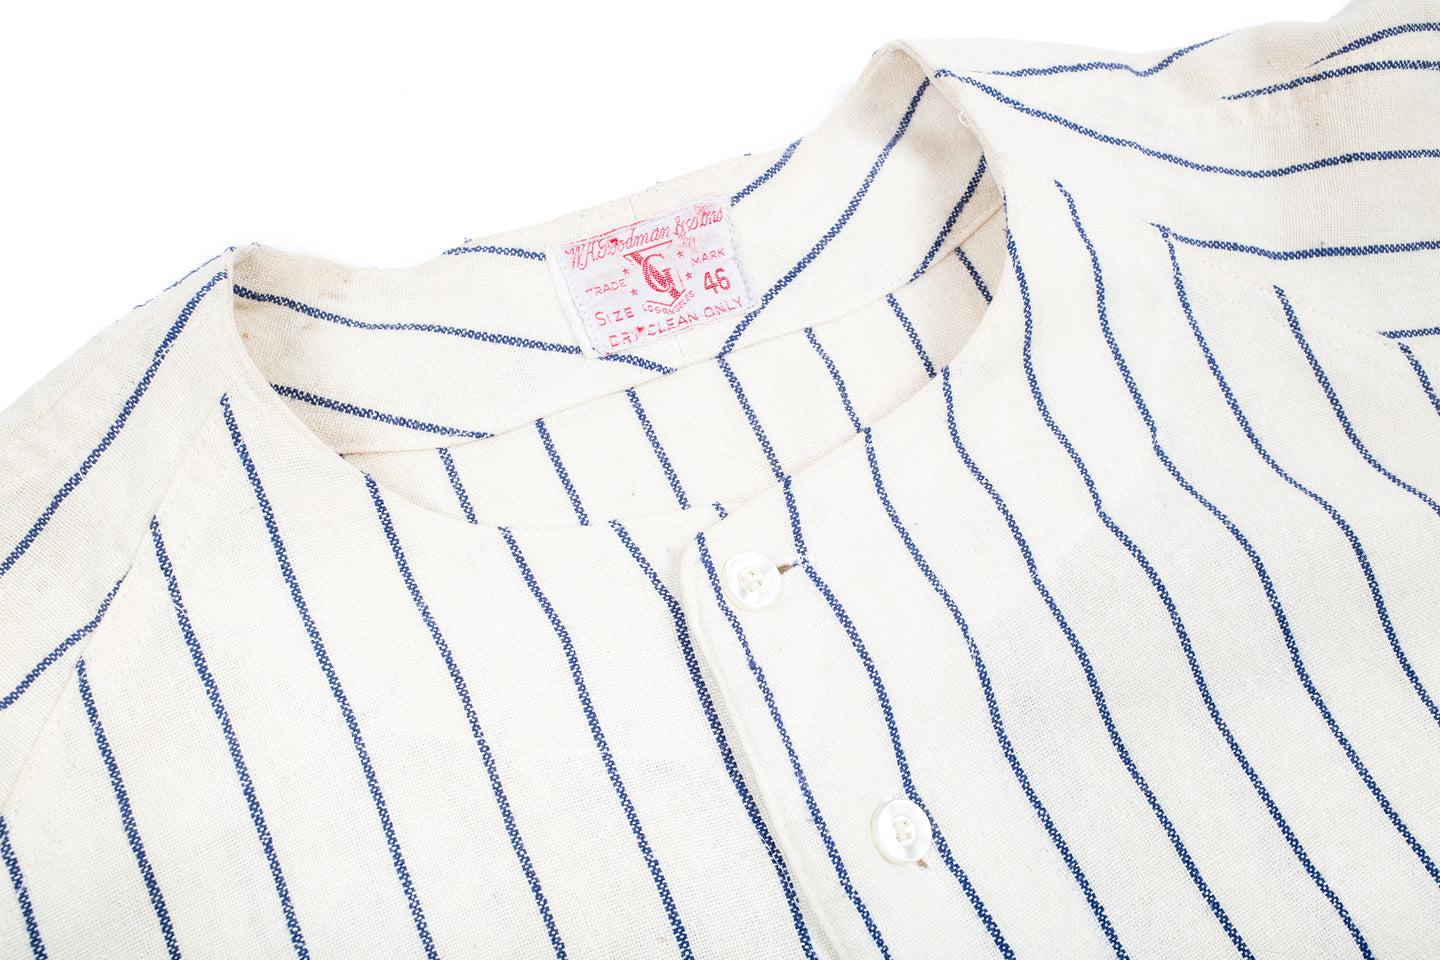 8d9611e2b3 ... Vintage Goodman and Sons - Post 467 Pinstripe Baseball Jersey